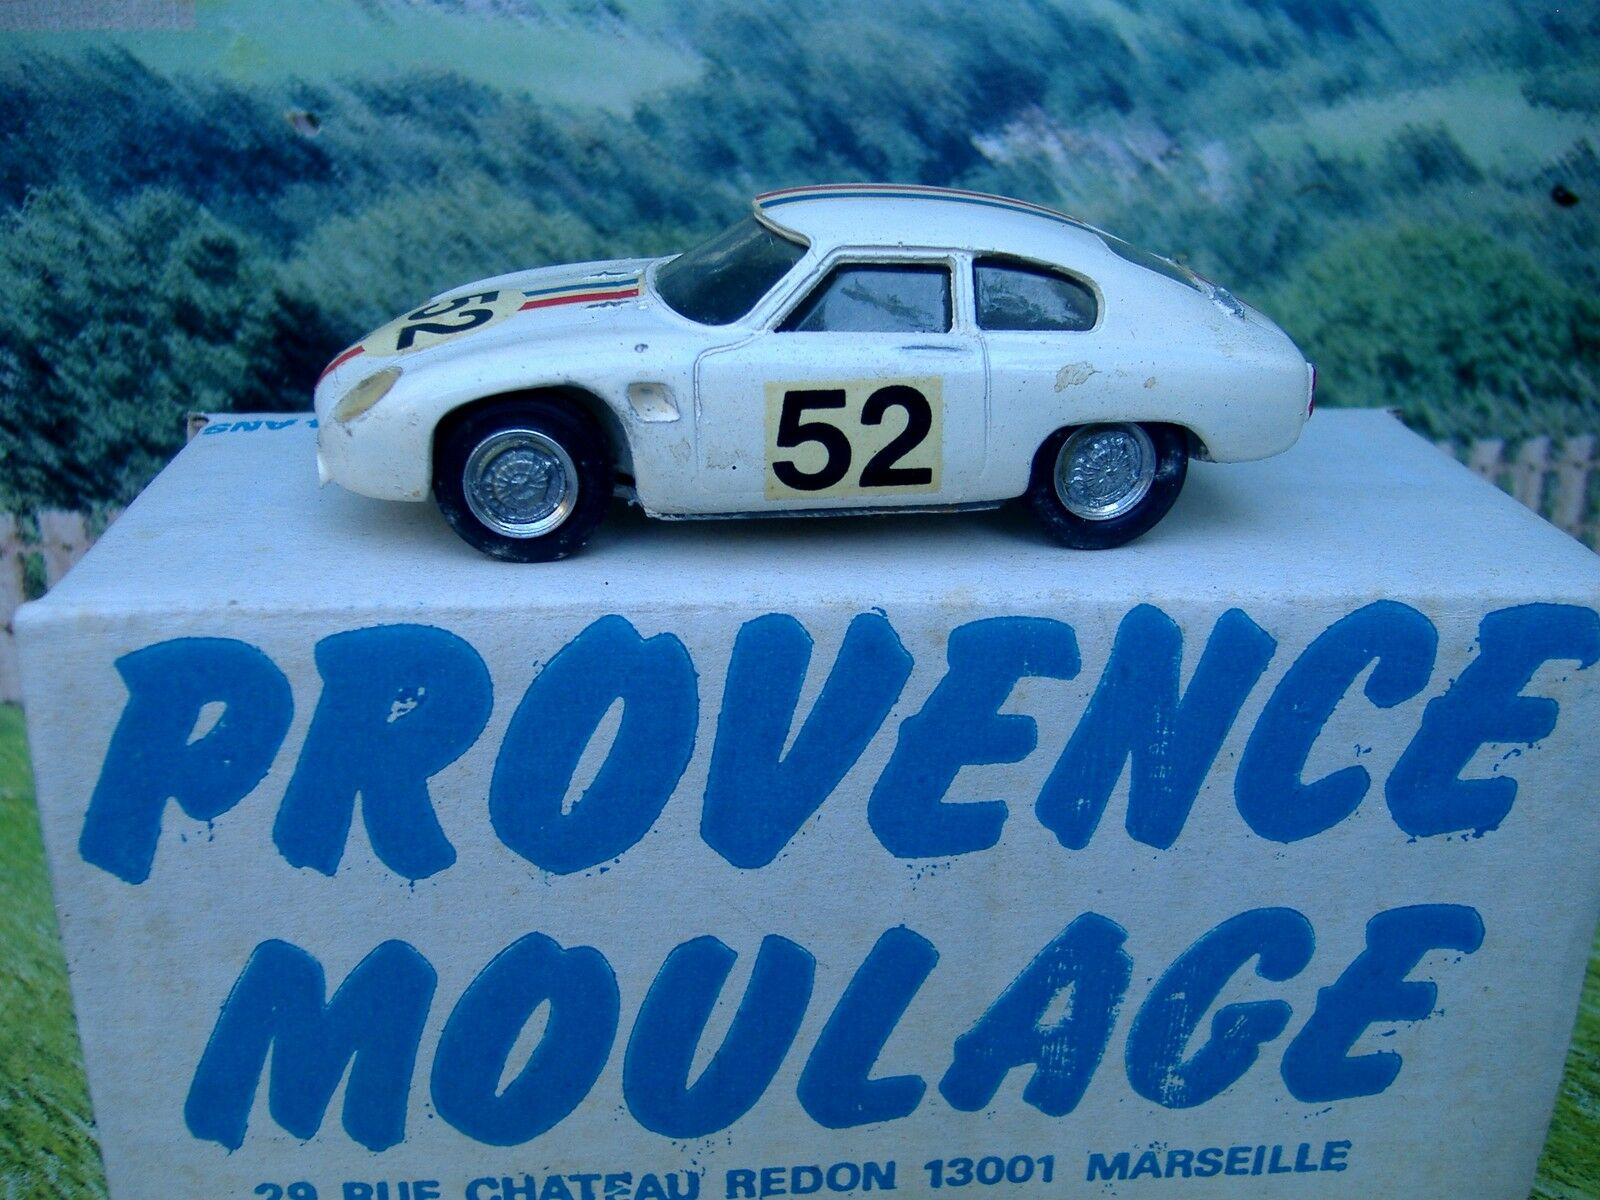 1 43 Provence Moulage (Francia) D.b Super Rally Lm 1961 Hecho A Mano Resina coche modelo